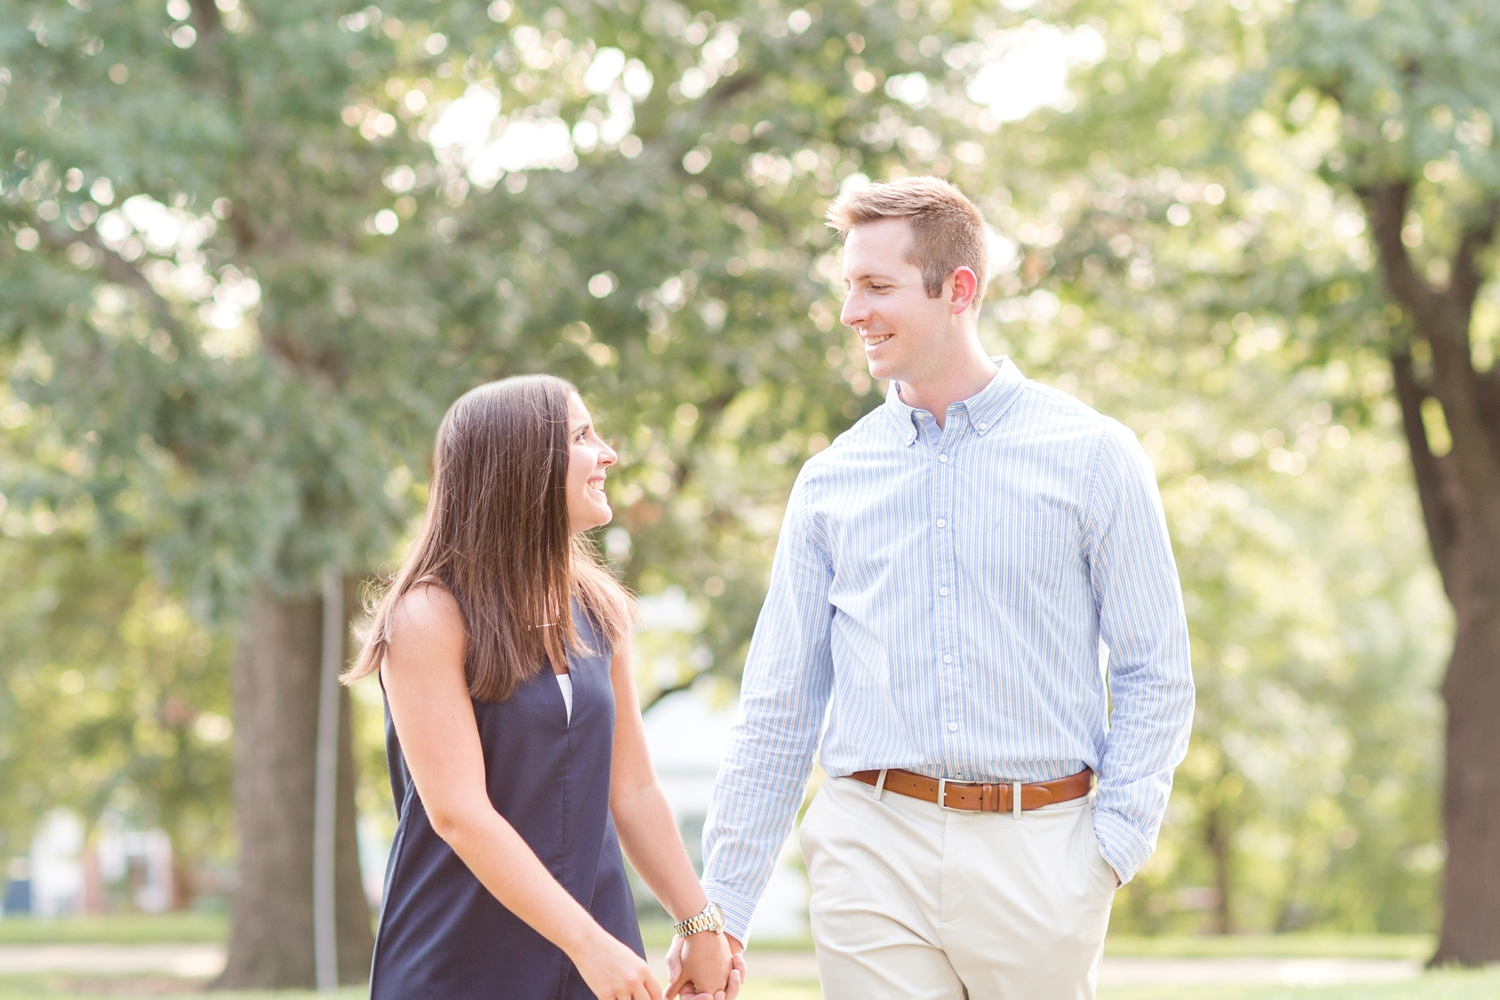 Jamie Wood & Daniel Schindler Engagement-14_Downtown-Baltimore-Maryland-engagement-photographer-anna-grace-photography-photo.jpg